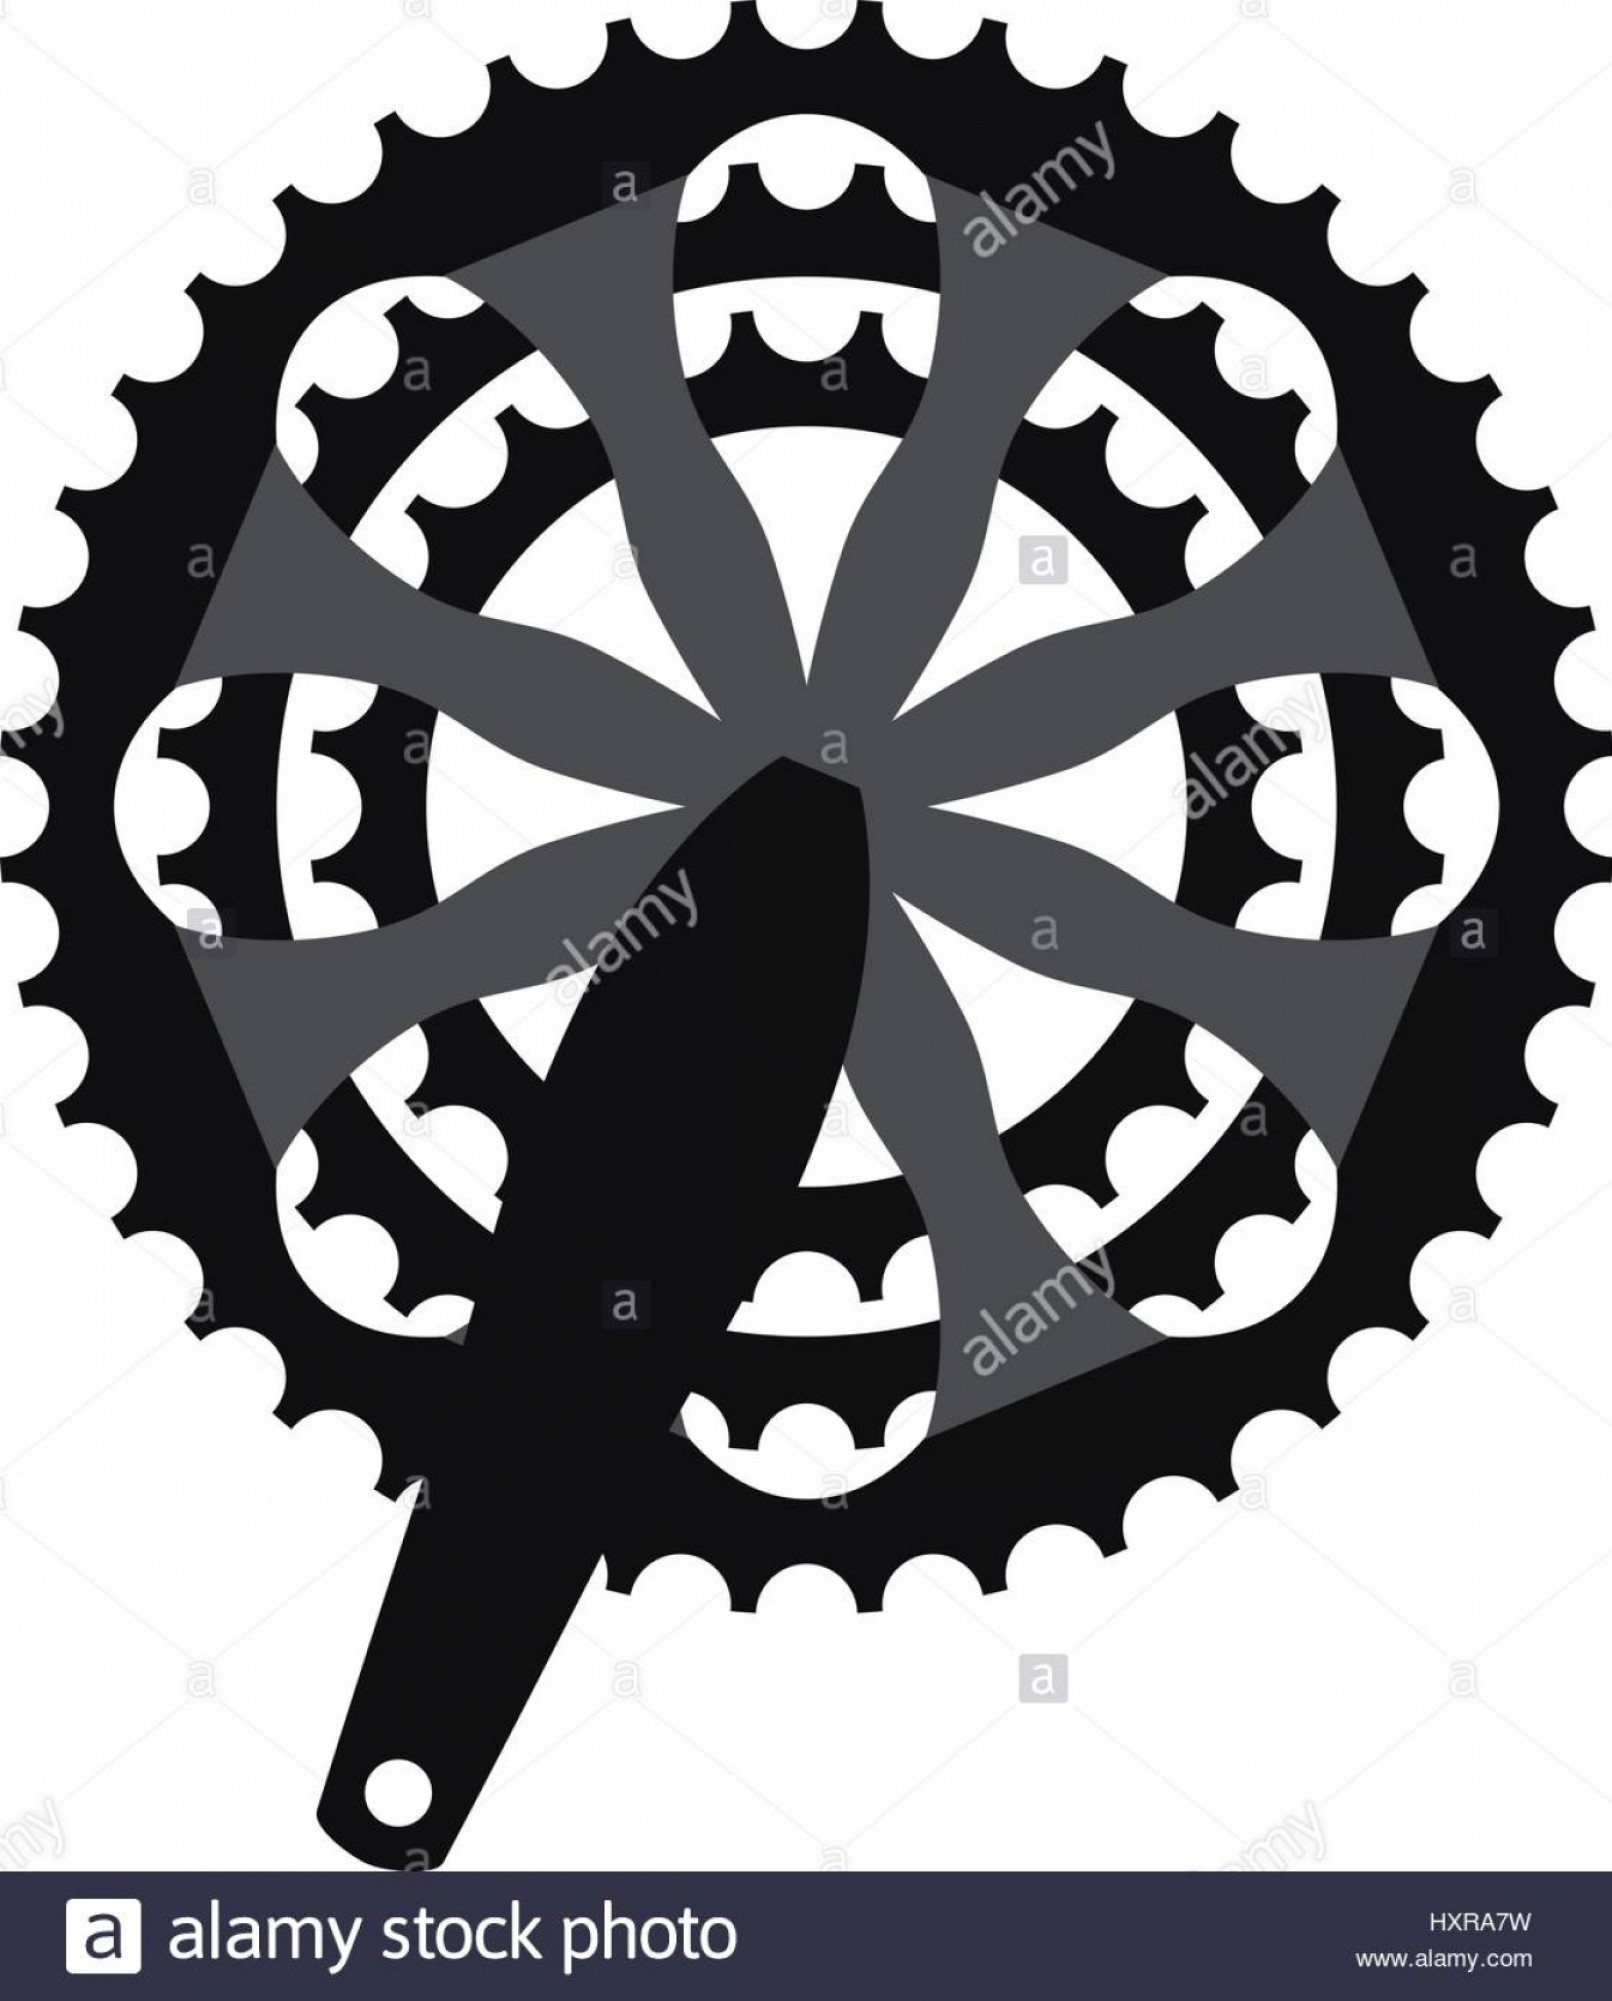 Bicycle Crank Vector Of Artwork: Stock Photo Vector Bicycle Cogwheel Crankset Sprocket Bike Crankset Cassette Symbol